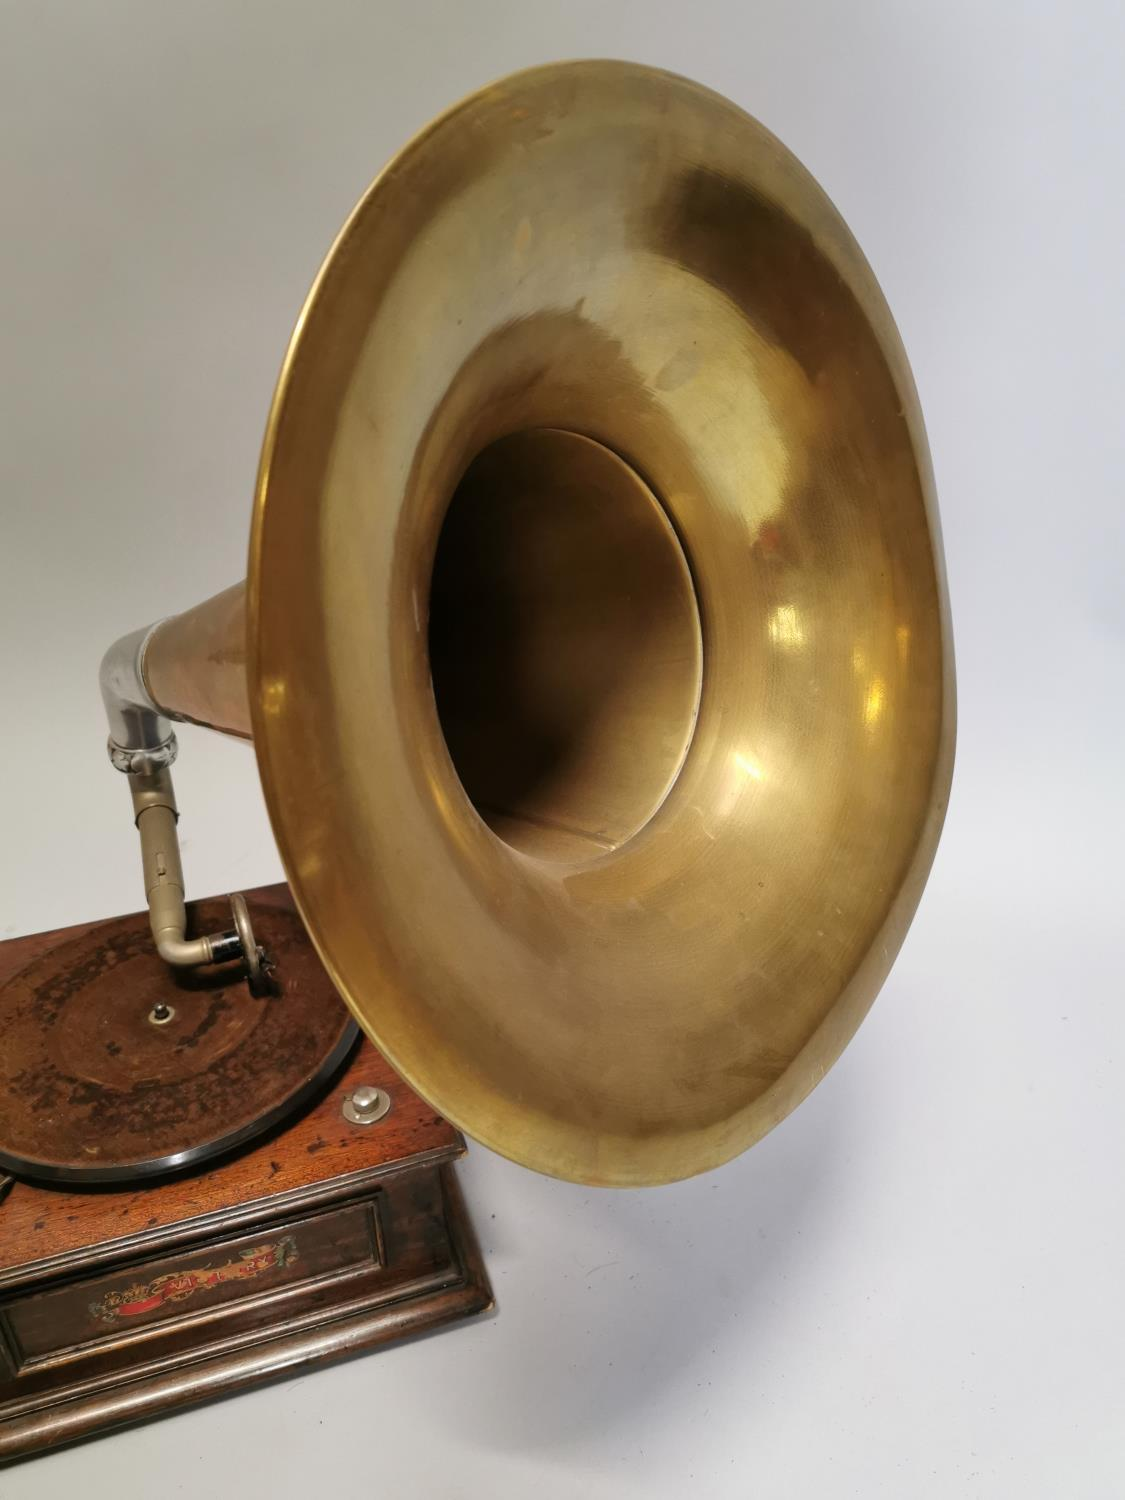 Victory gramophone in oak case with brass horn - Image 2 of 7